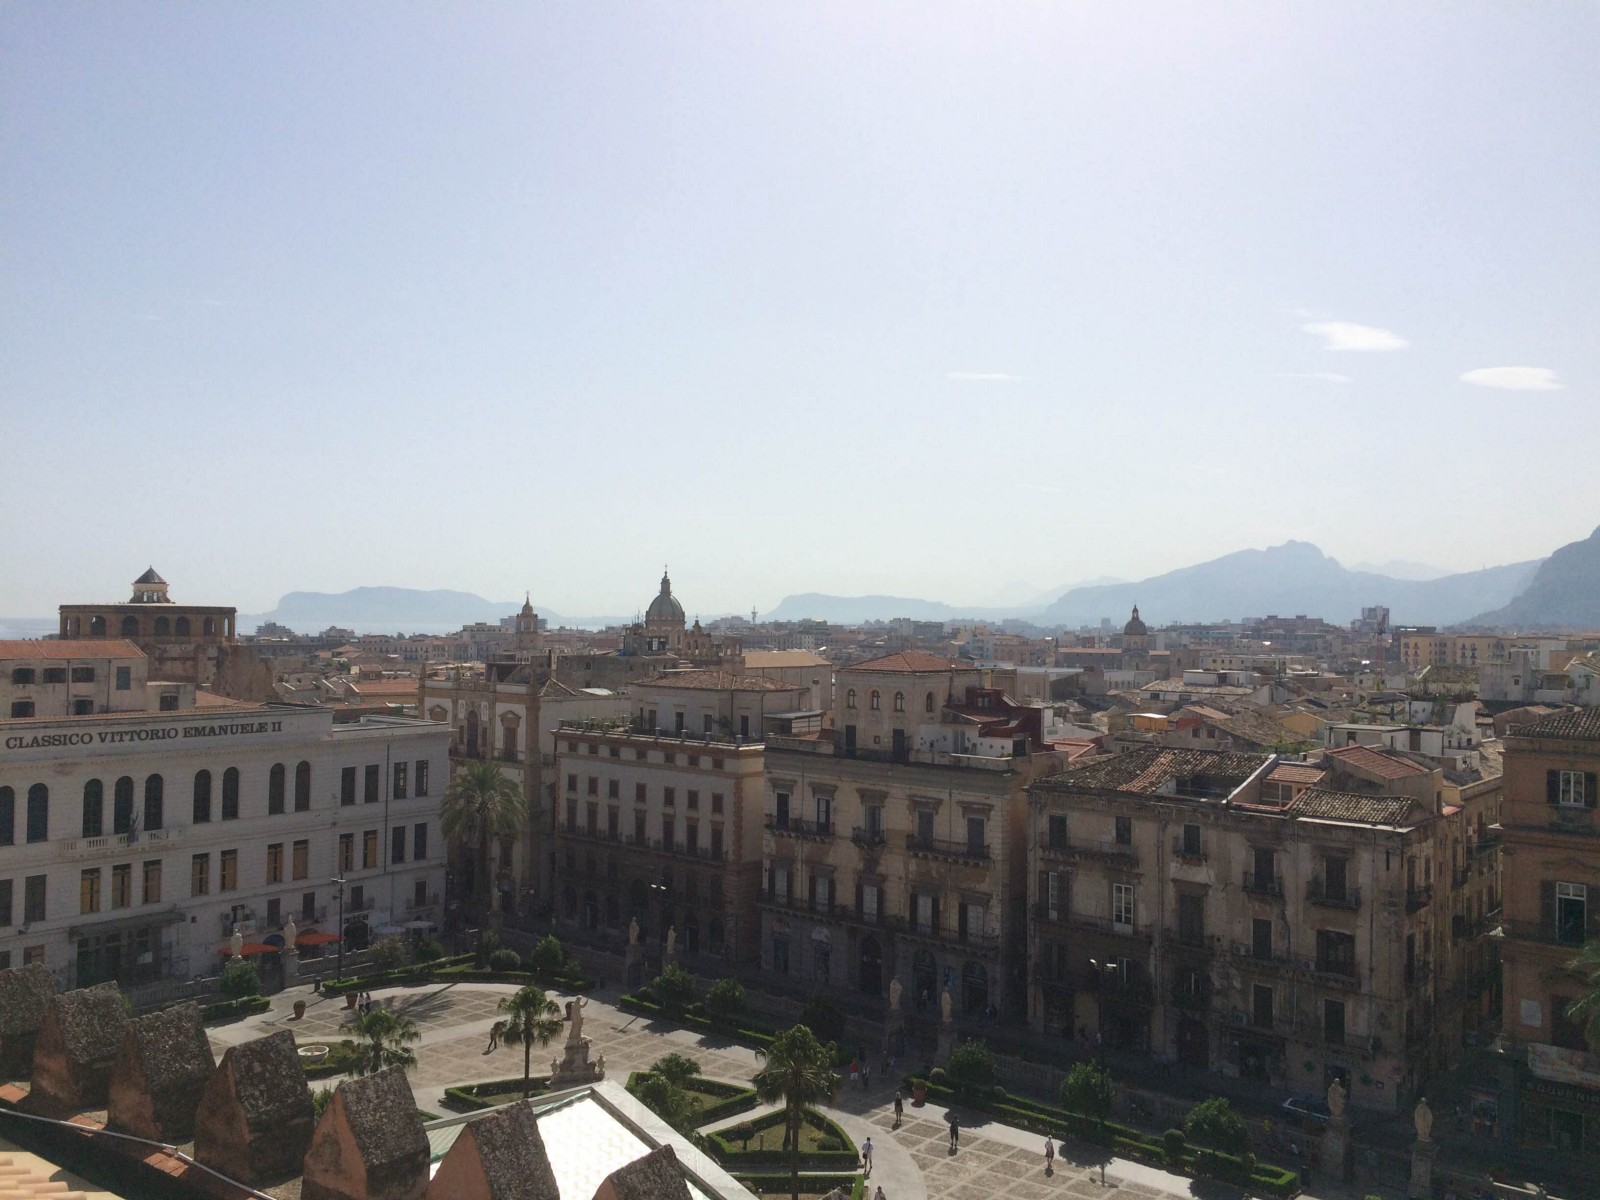 Palermo from the roof of the city's cathedral.